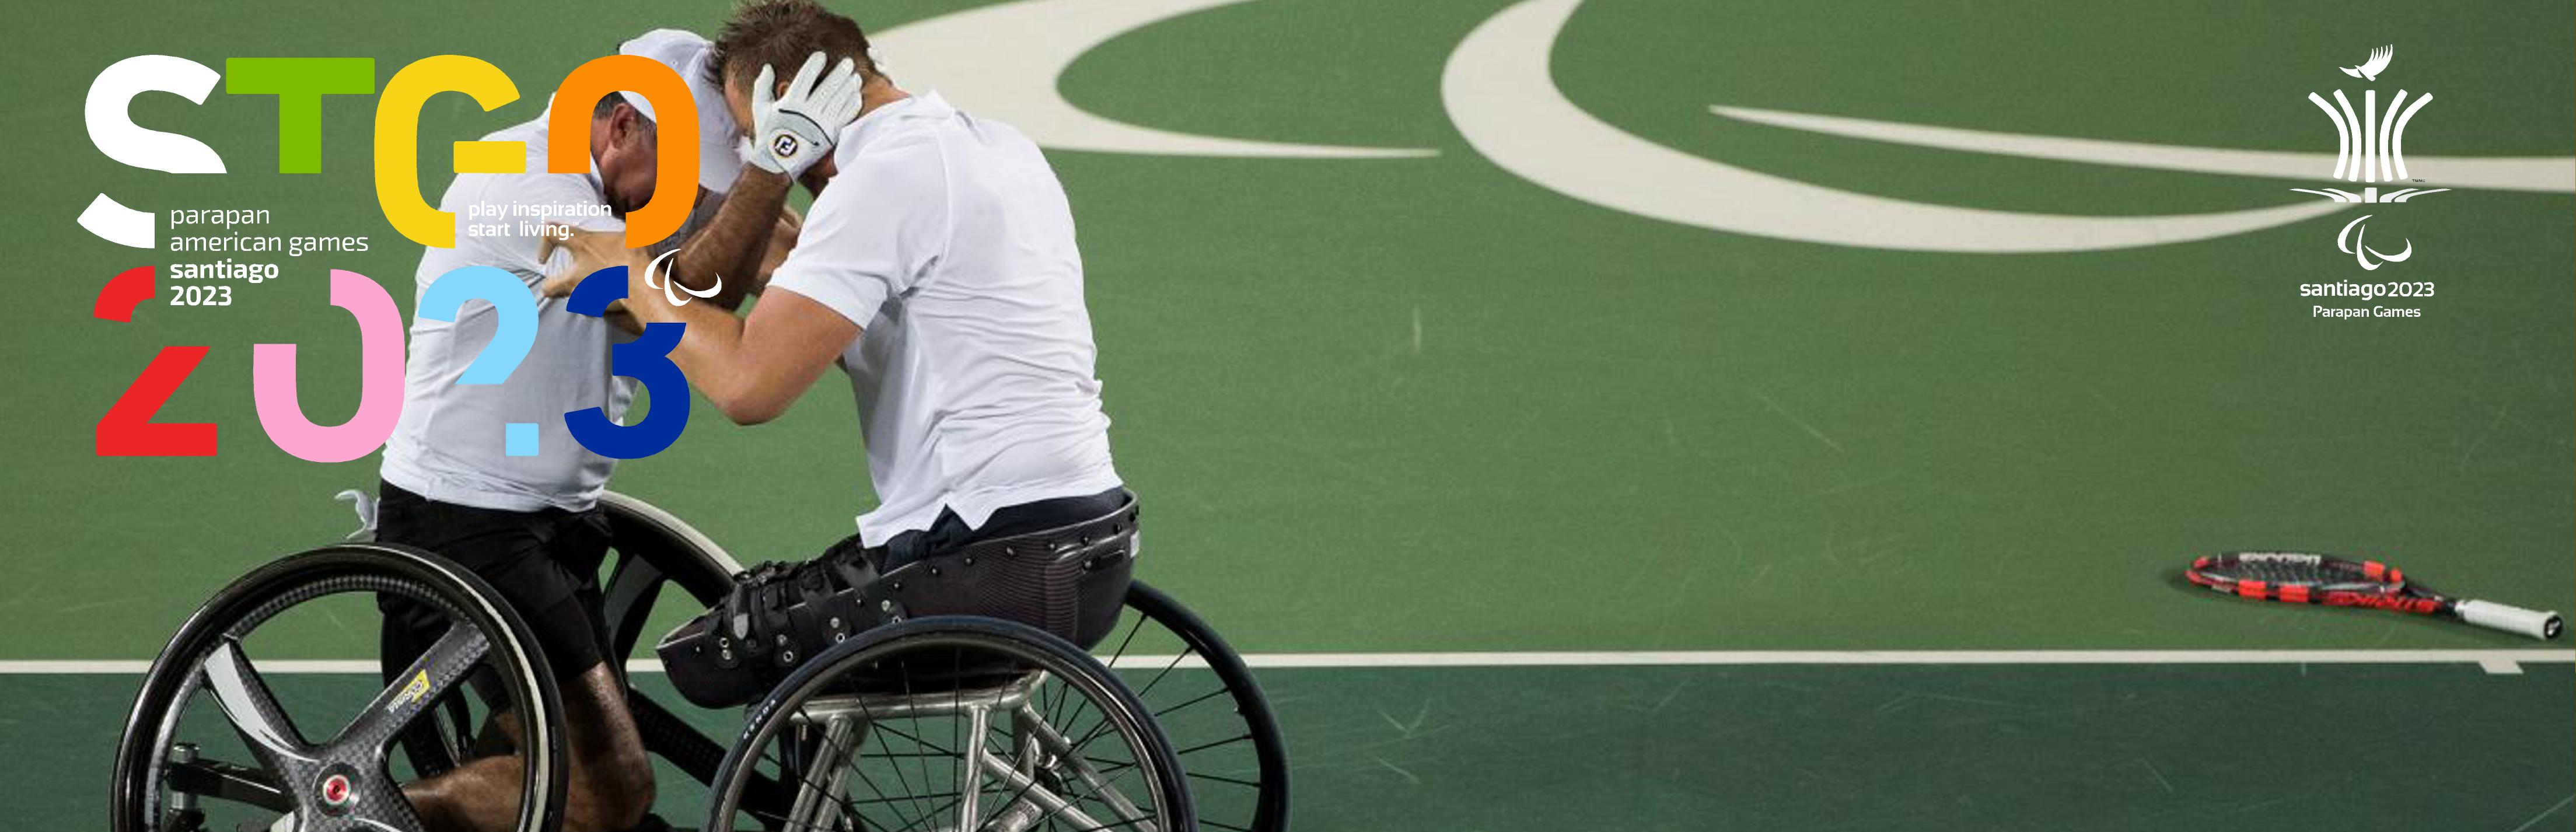 Parapan Games Santiago 2023 – Categories